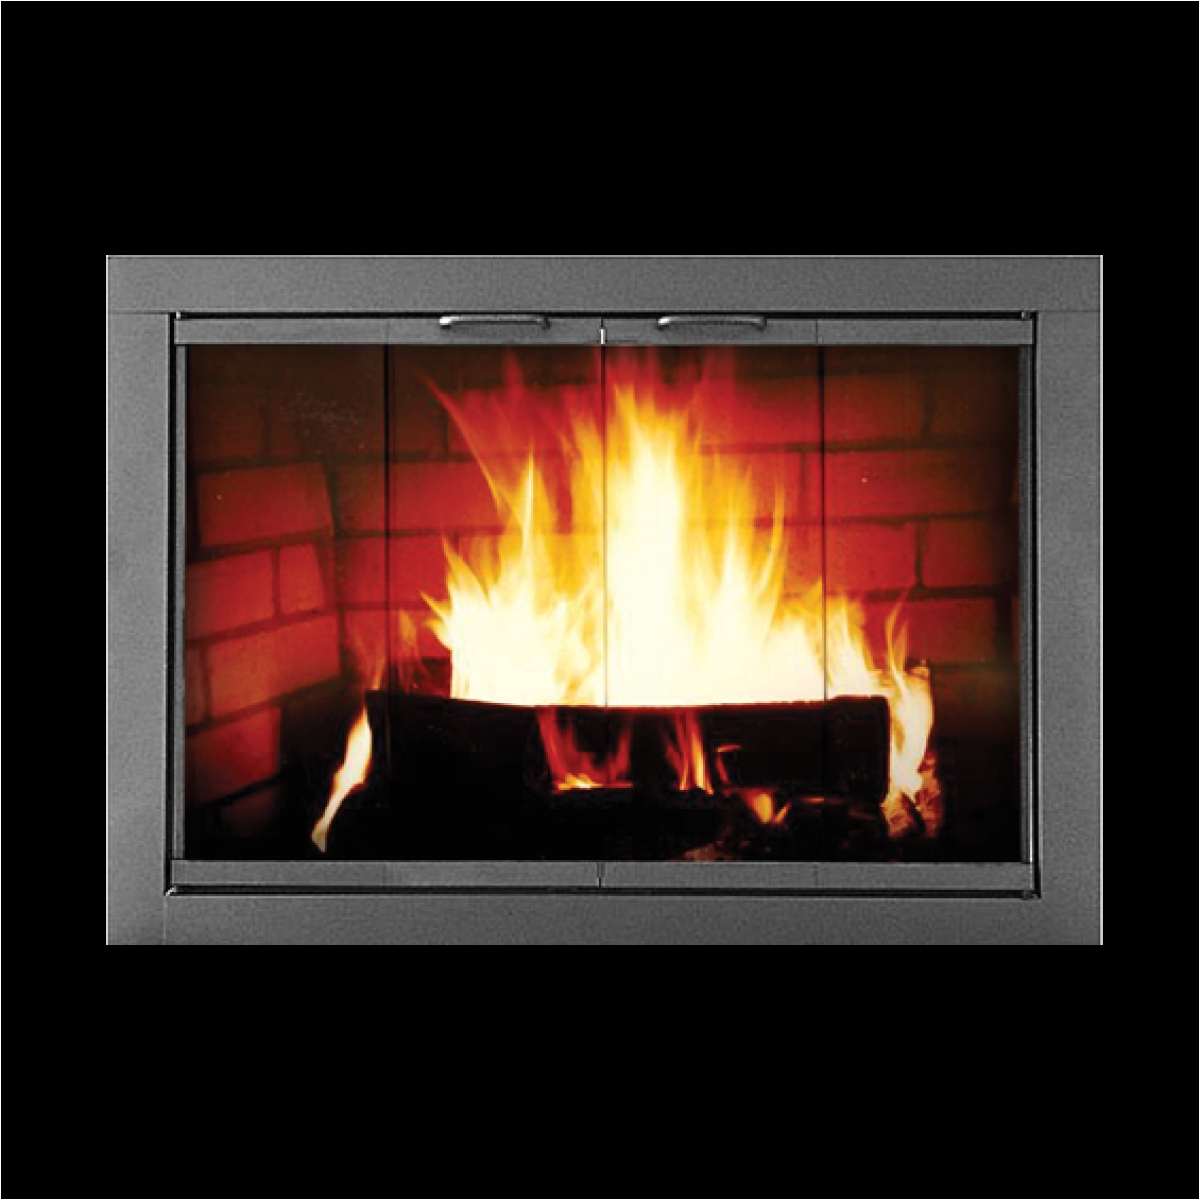 temtex fireplace glass doors the madison masonry fireplace door masonry fireplace glass doors of temtex fireplace glass doors